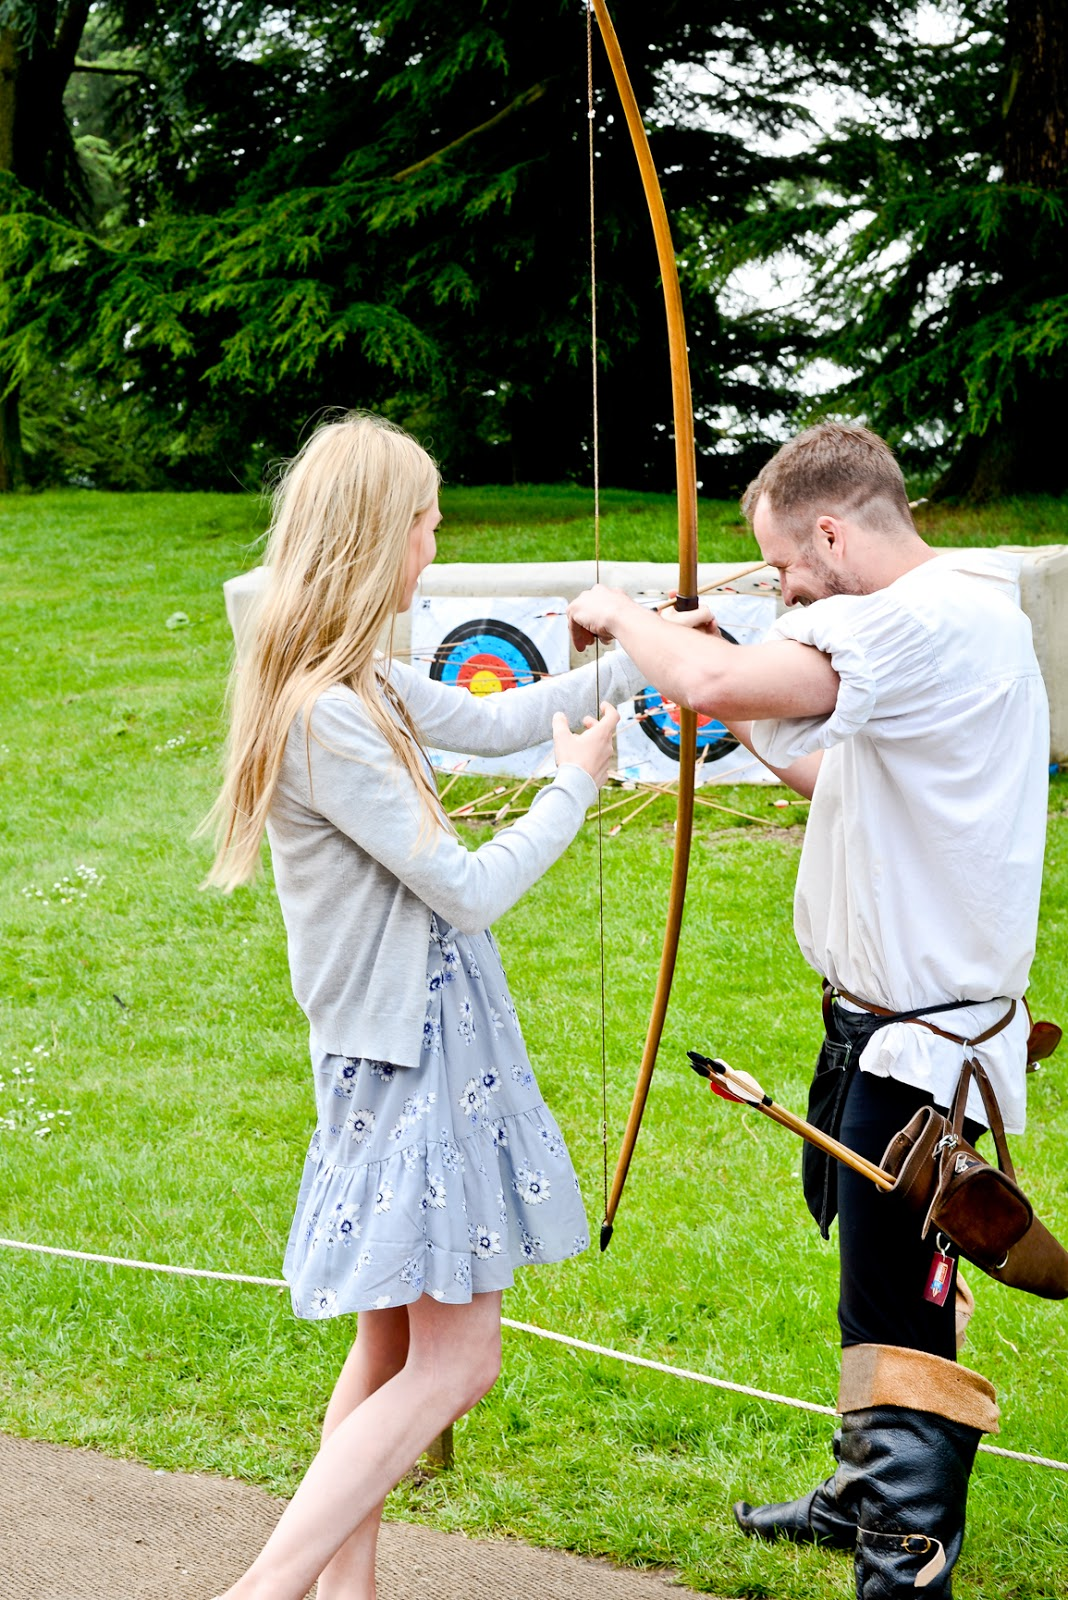 archer warwick castle, Medieval Glamping At Warwick Castle, Warwick Castle, What to see at Warwick Castle, Staying at Warwick Castle,